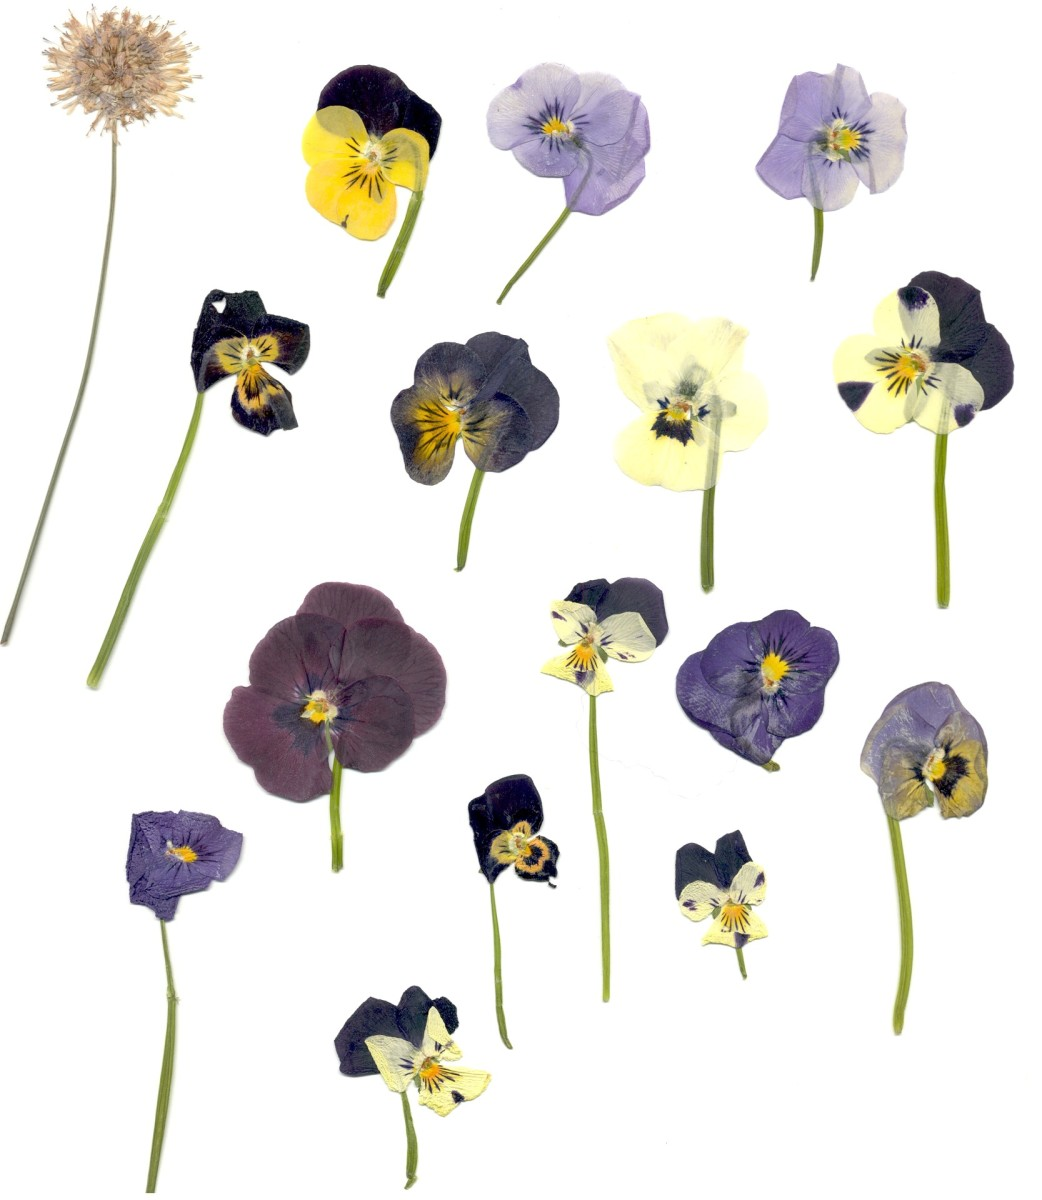 Pretty up any object with pansies.